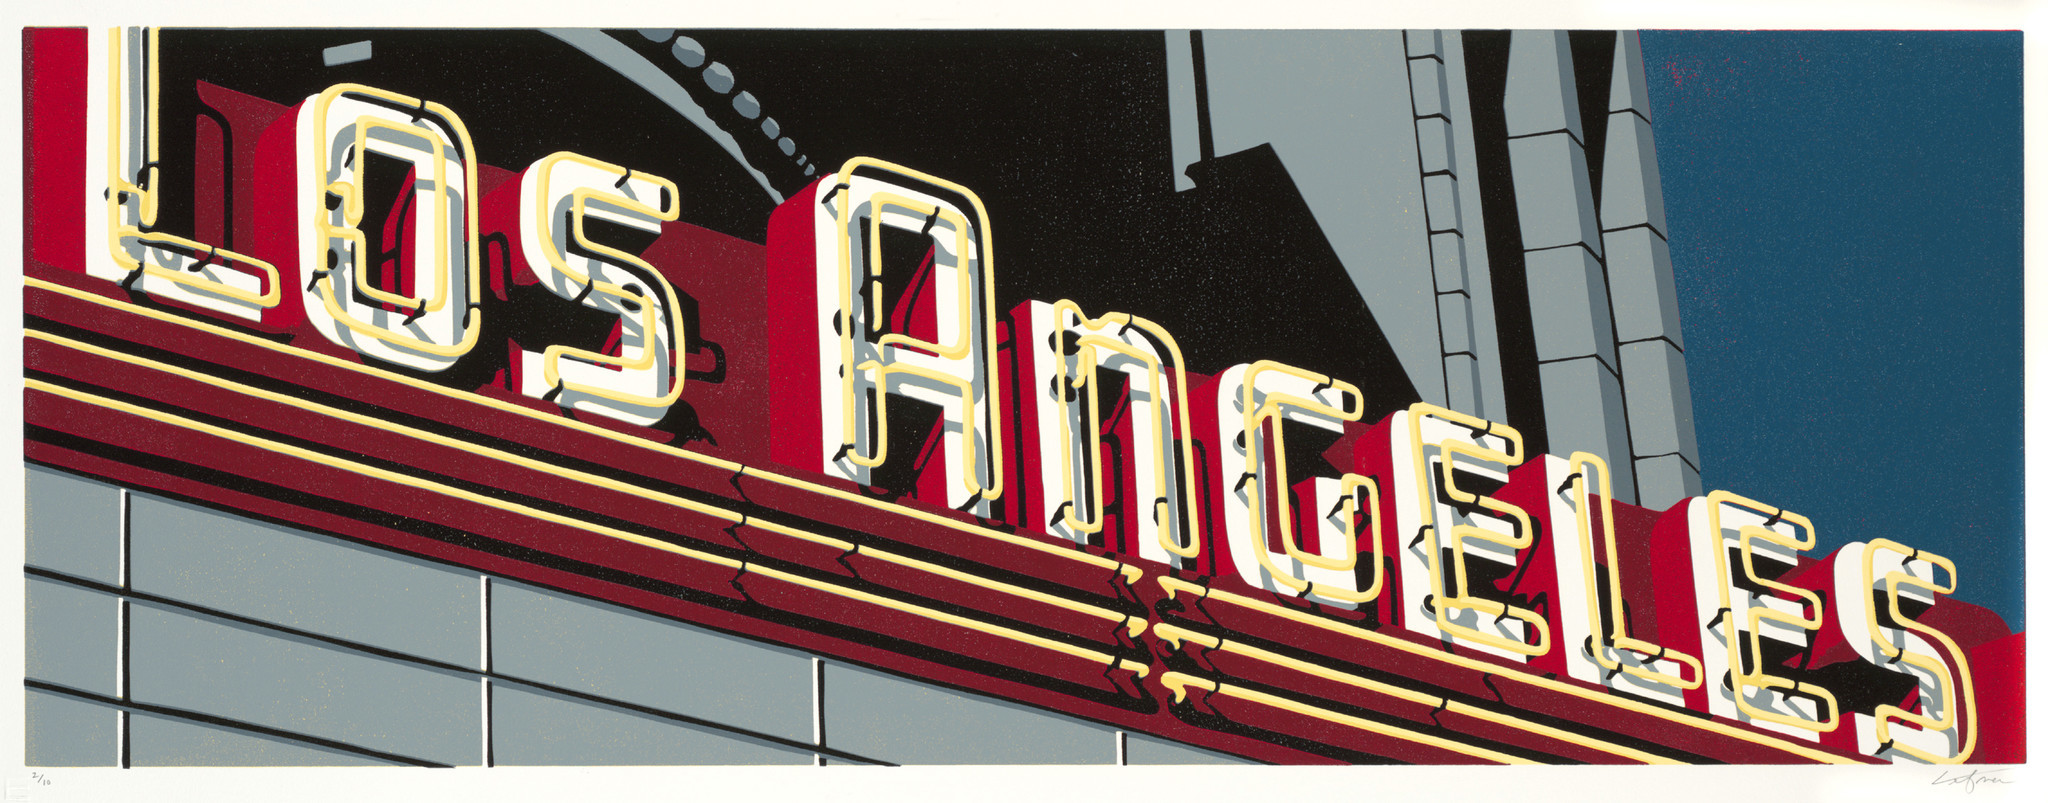 """Dave Lefner's """"The Los Angeles II,"""" 2009. Reduction linocut in eight colors, 13 inches by 36 inches."""